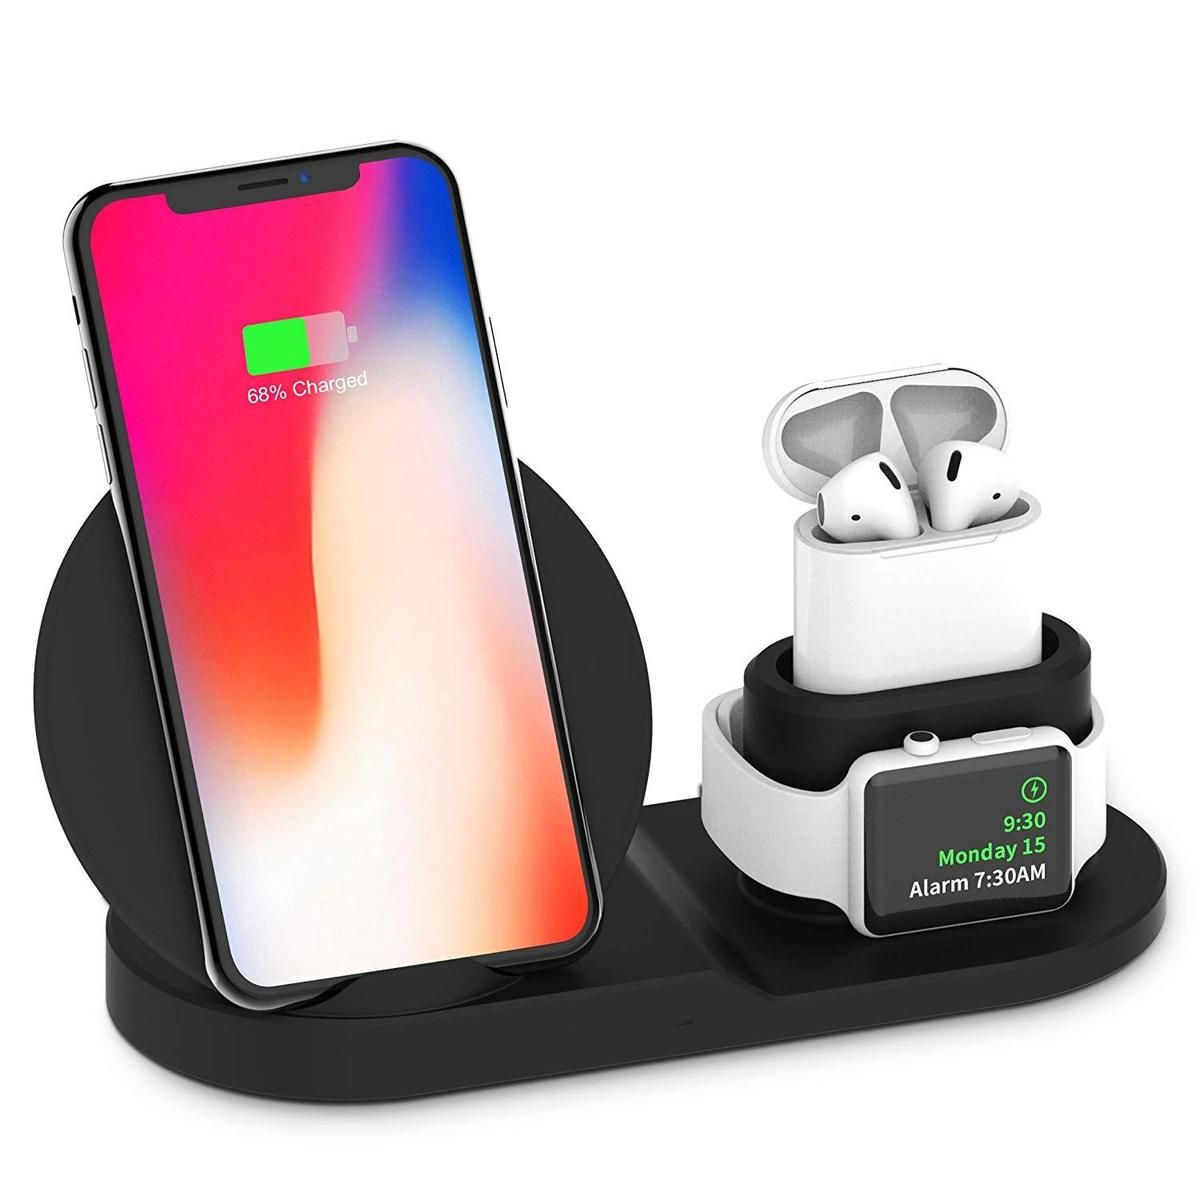 Wrls™ 3 in 1 wireless charging station in 2020 | Apple